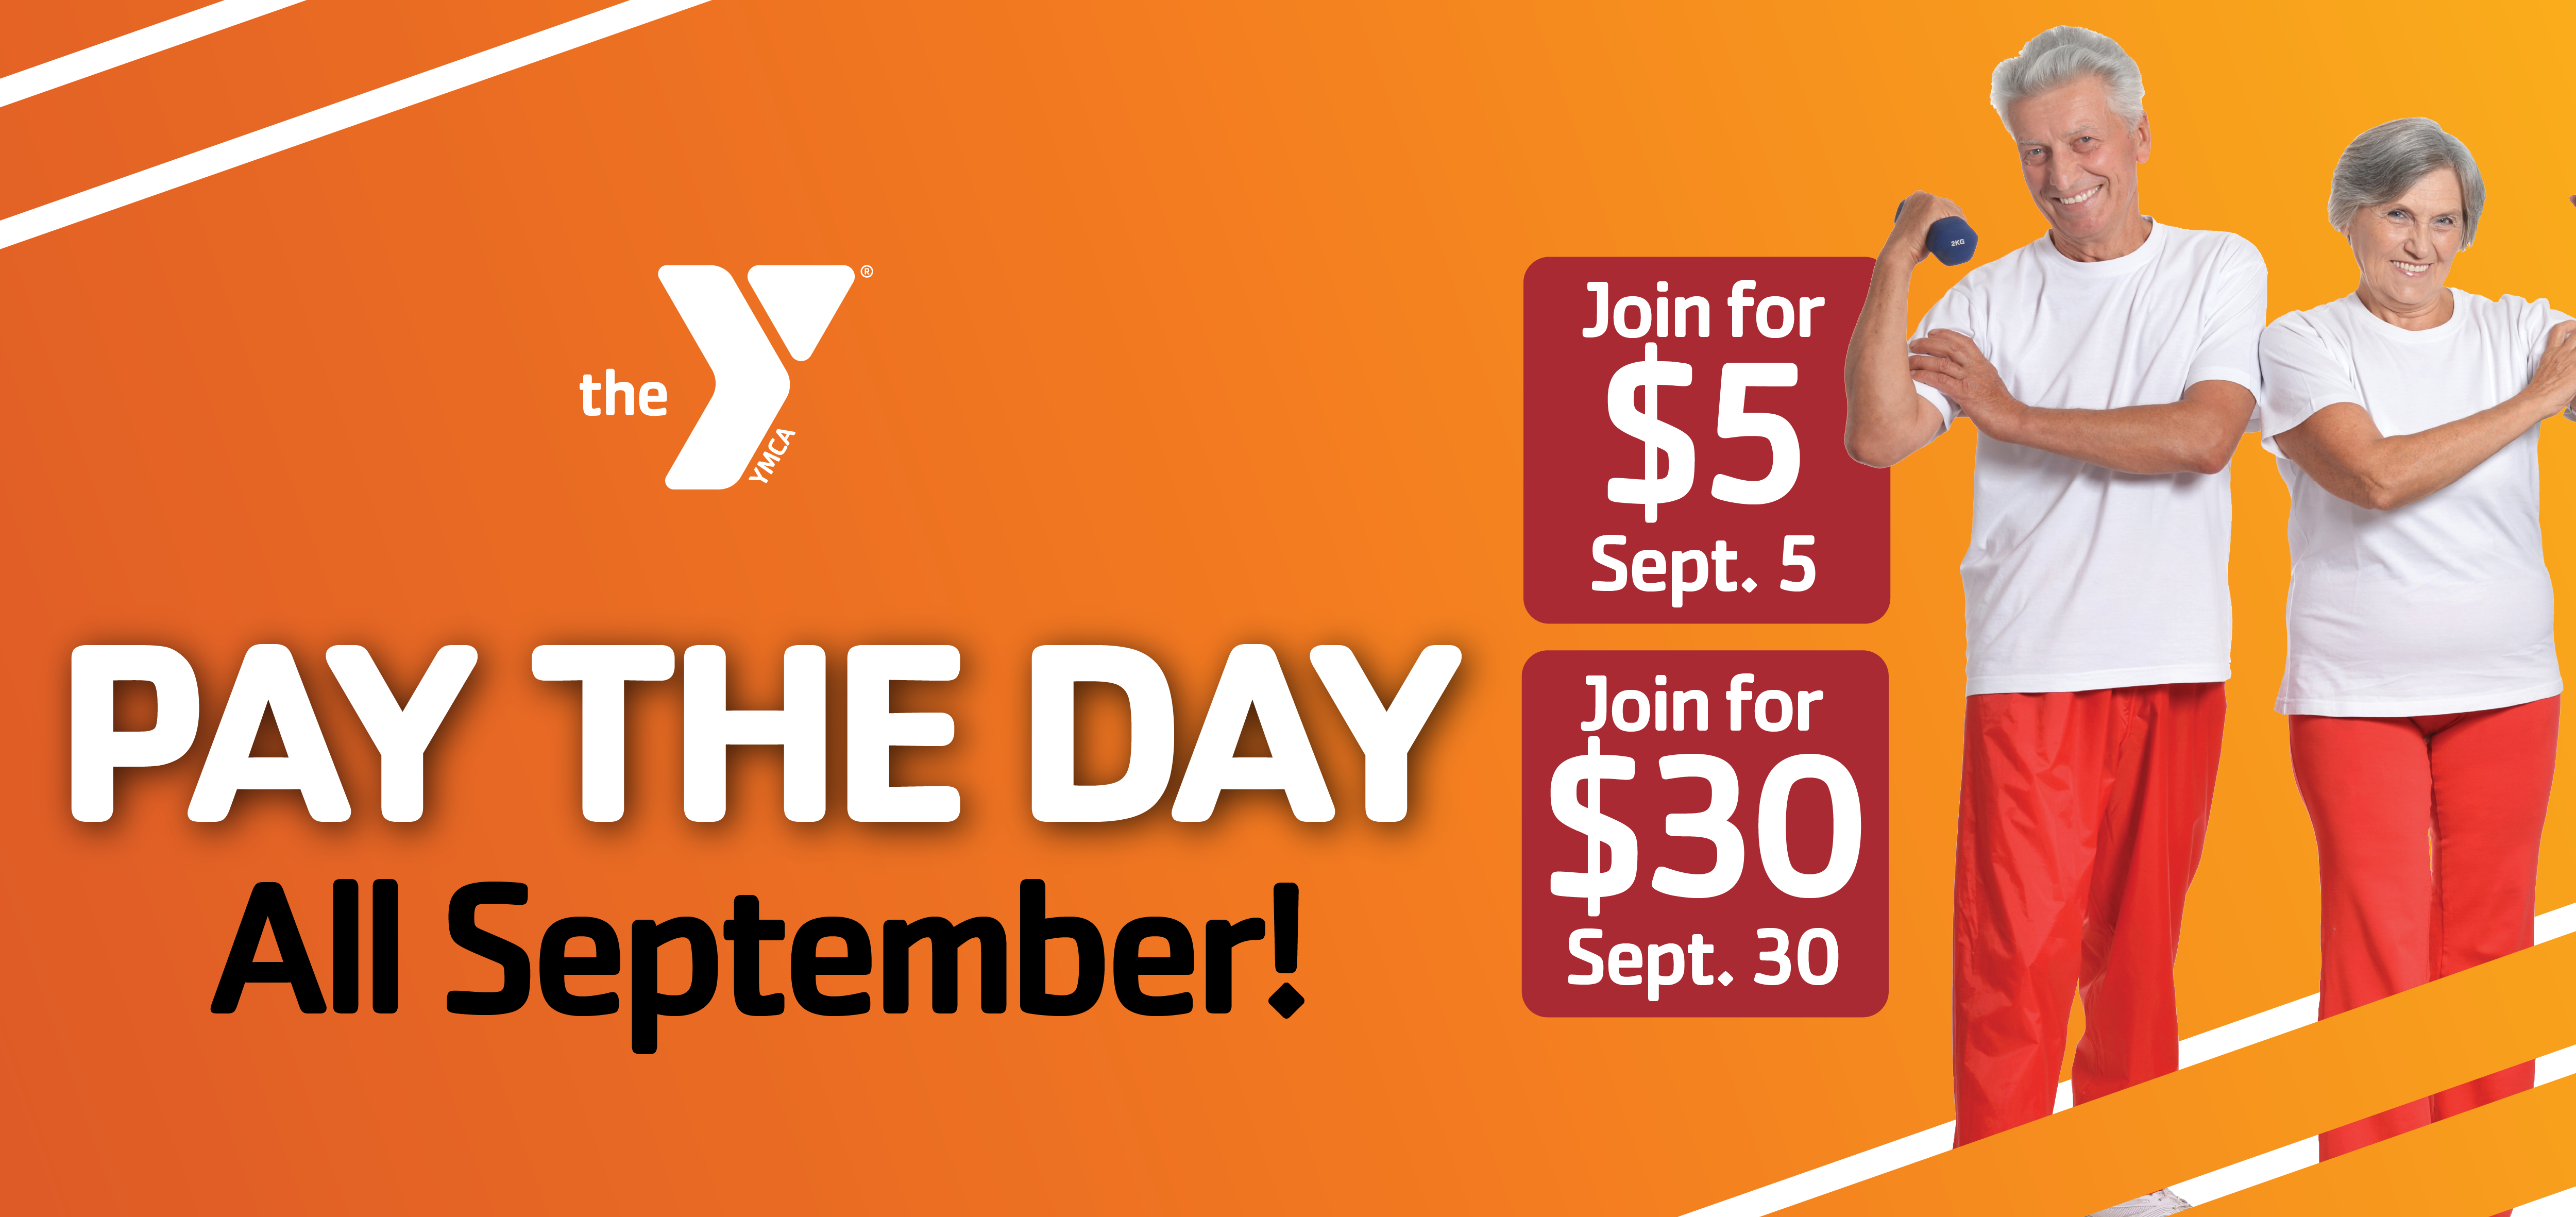 Pay The Day All September